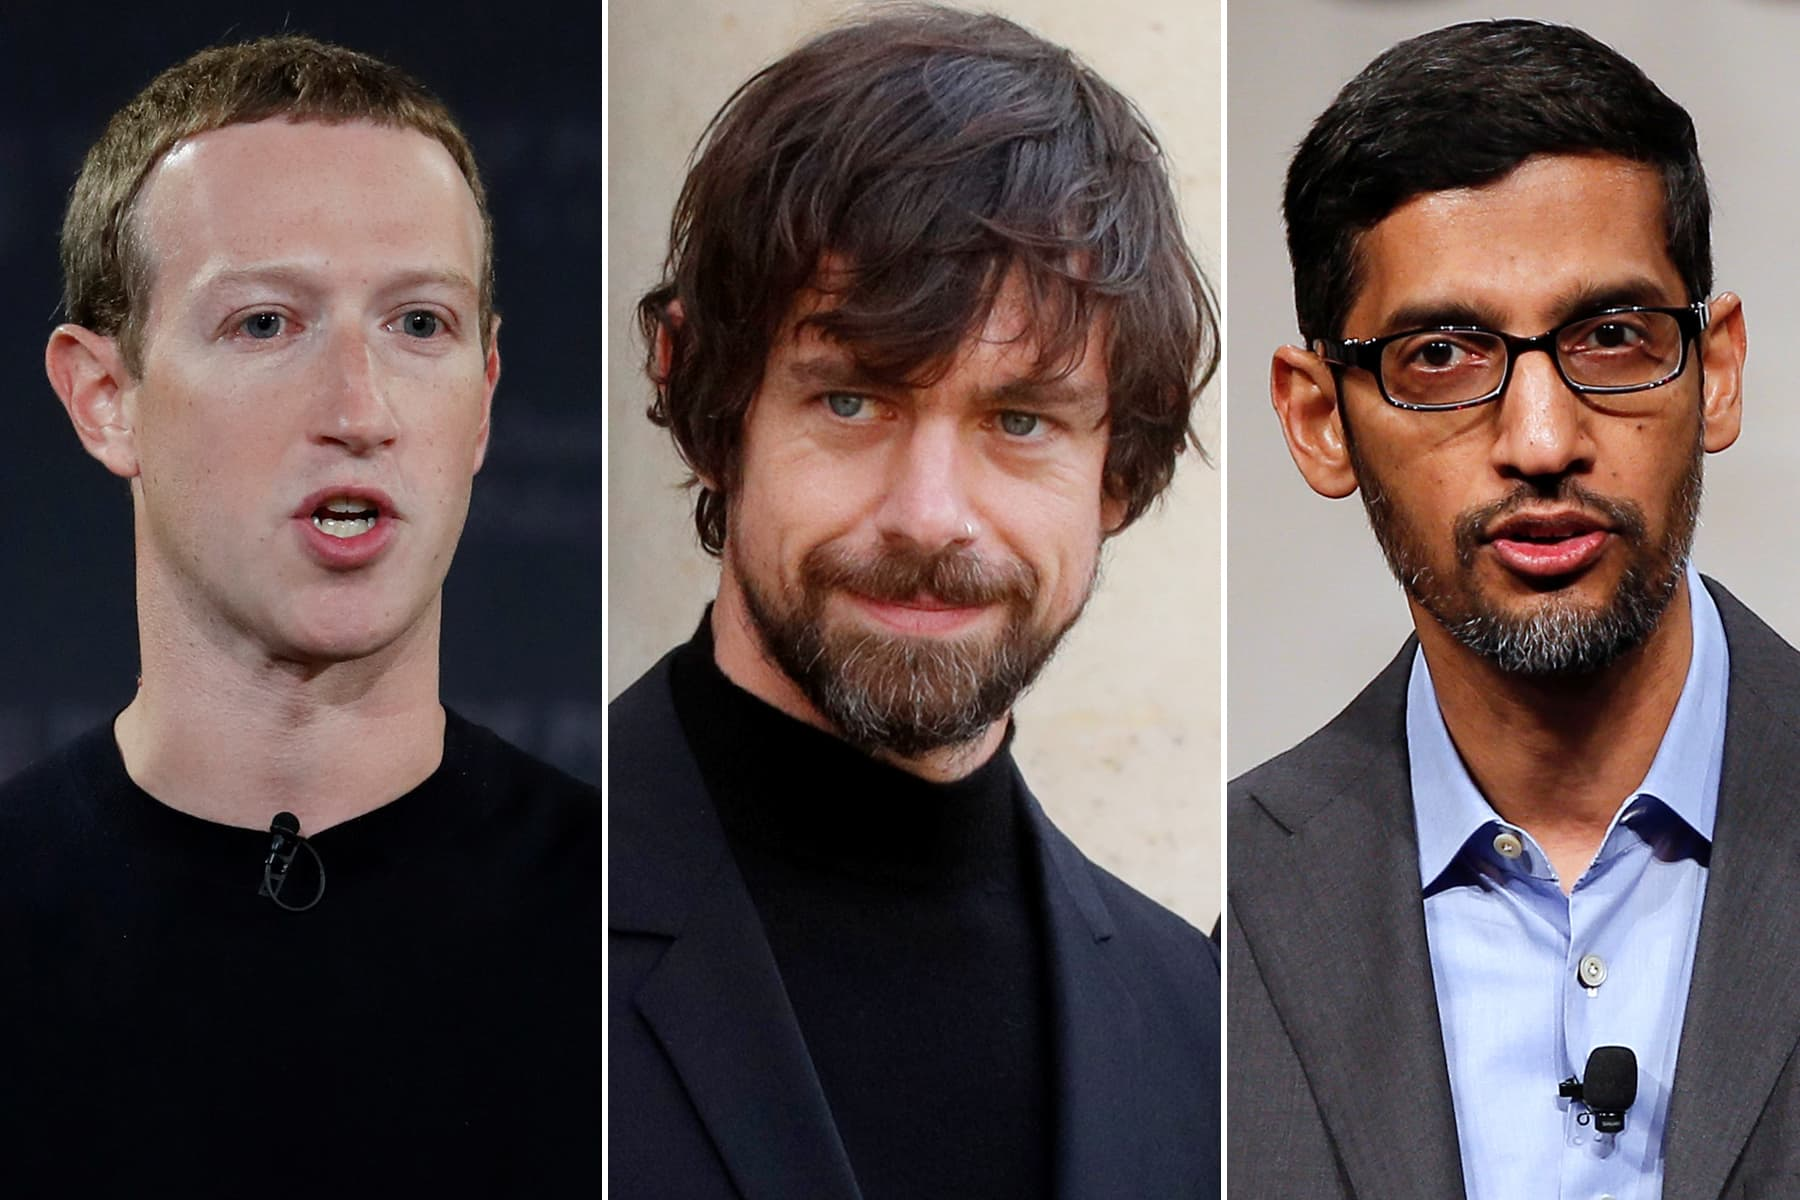 Facebook, Google and Twitter CEOs will make another appearance before Congress in March - CNBC